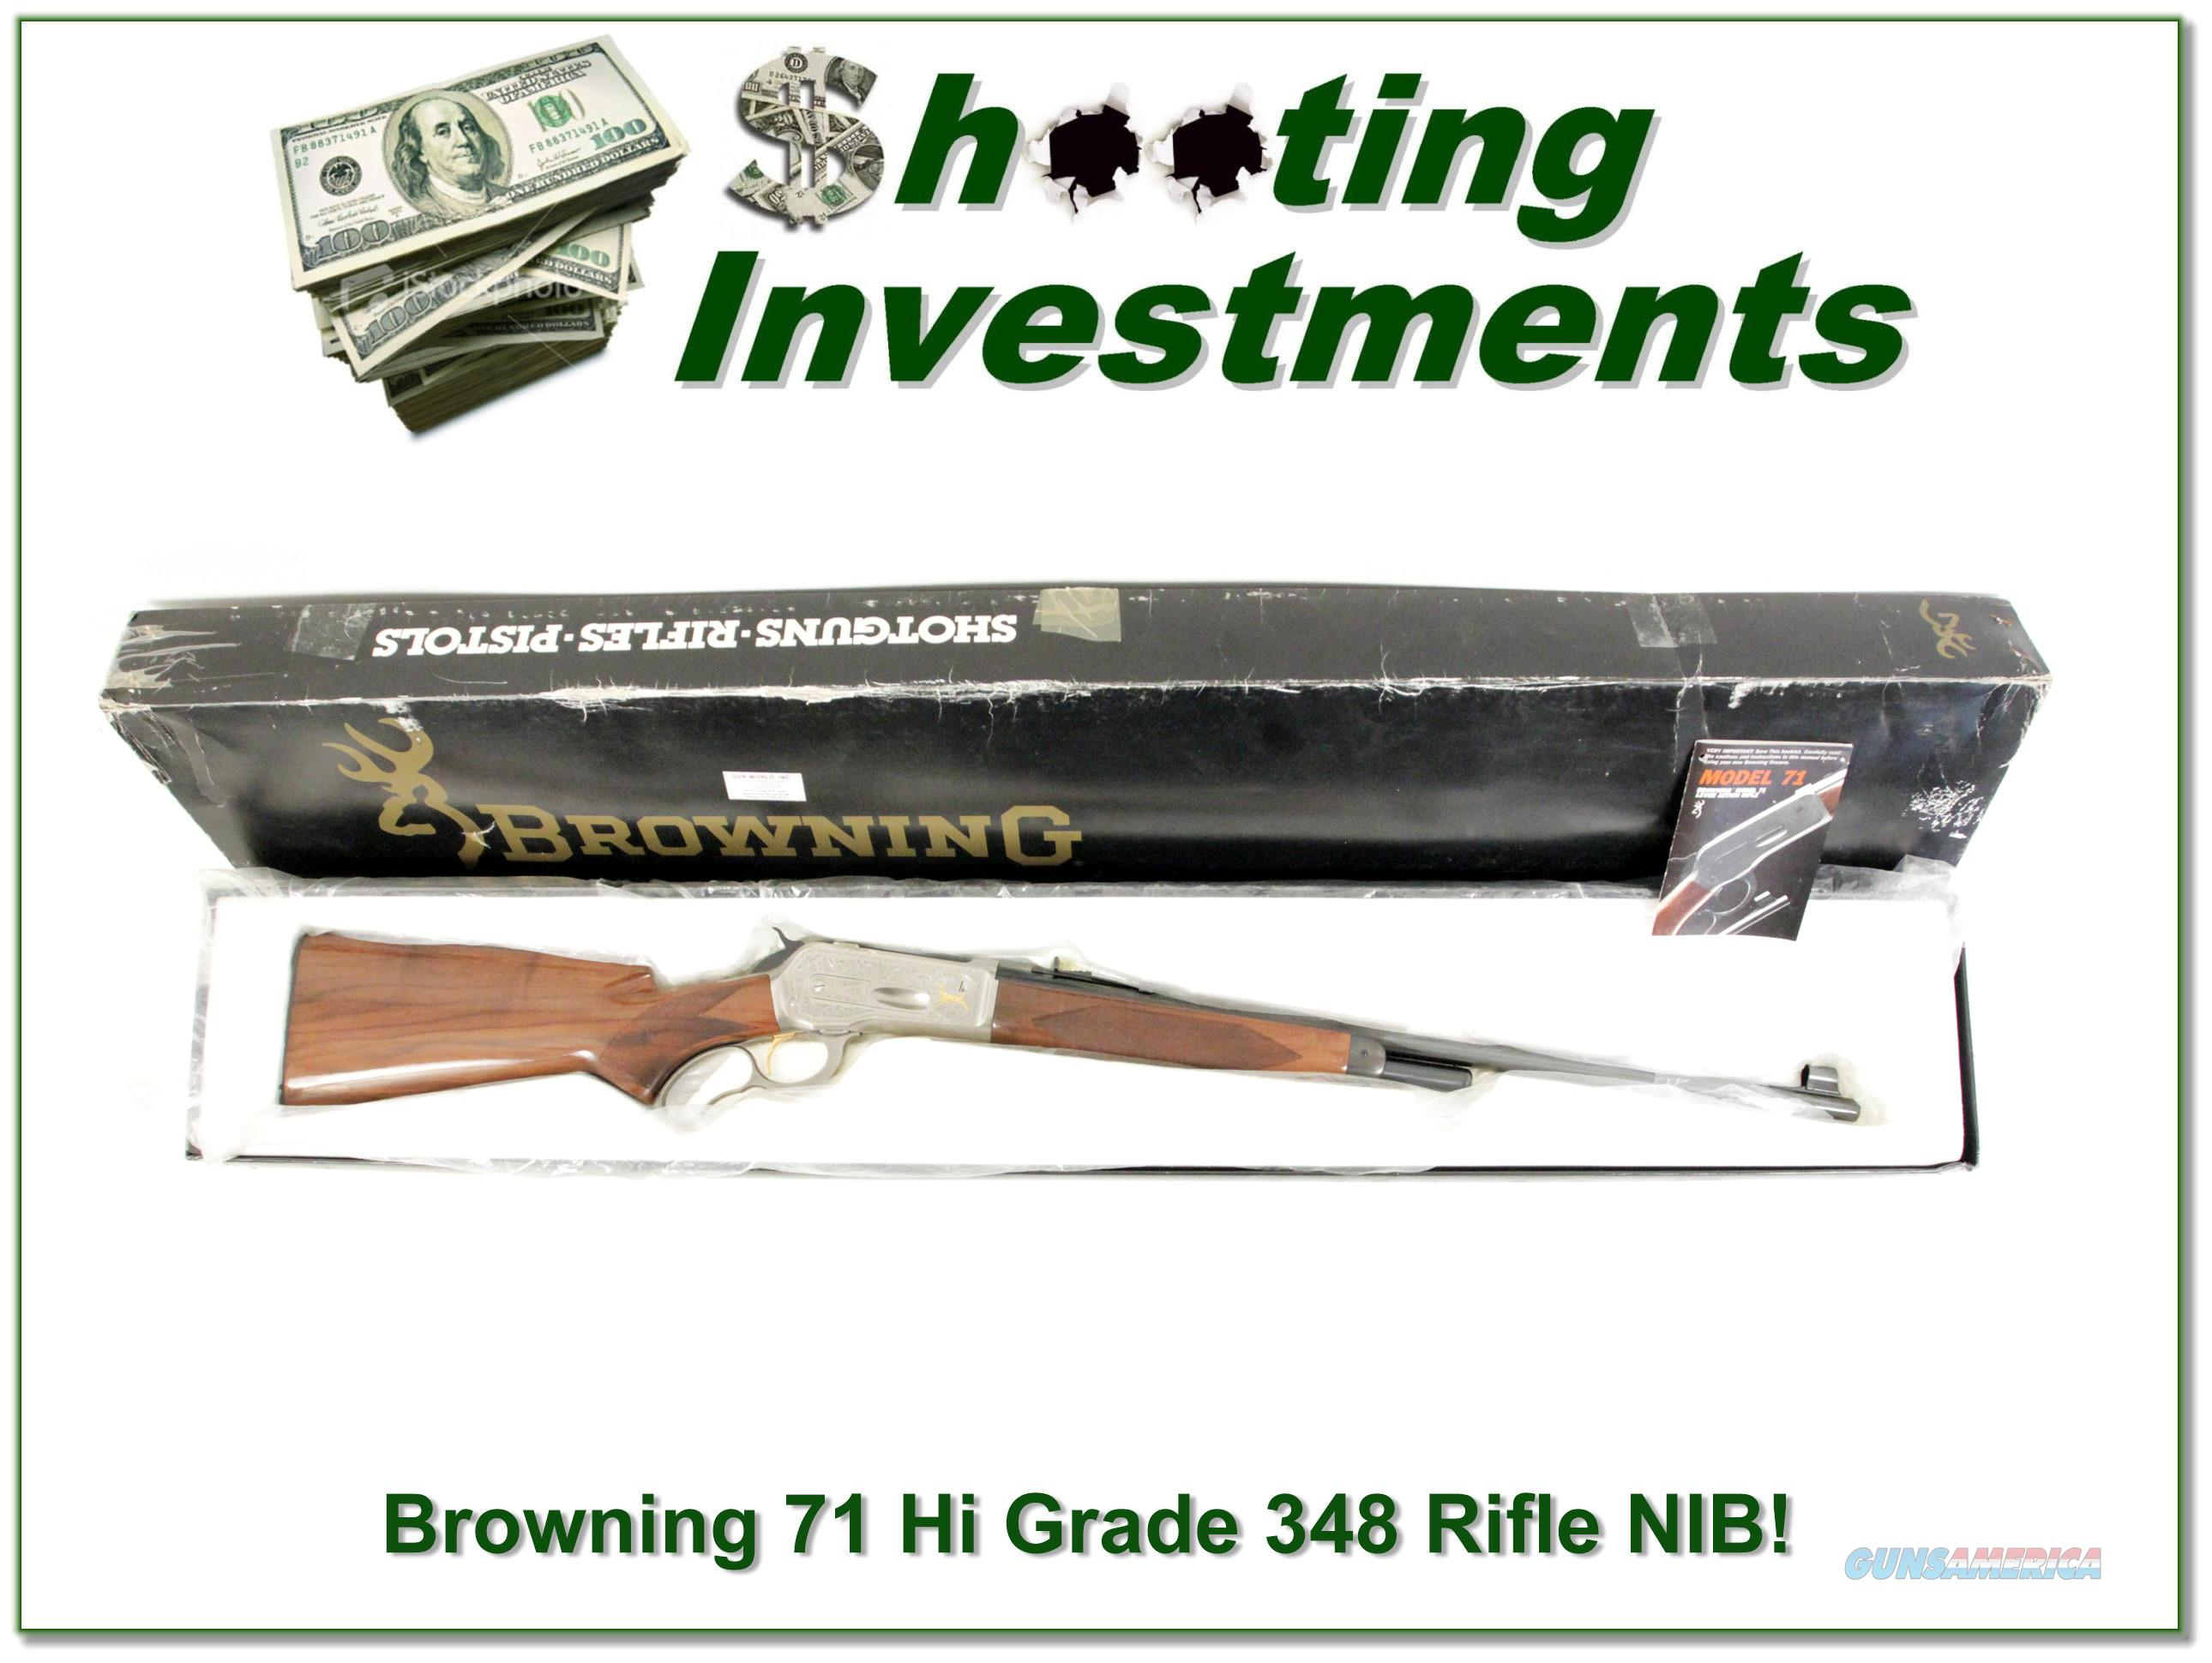 Browning Model 71 Rifle High Grade 348 Win new in box  Guns > Rifles > Browning Rifles > Lever Action